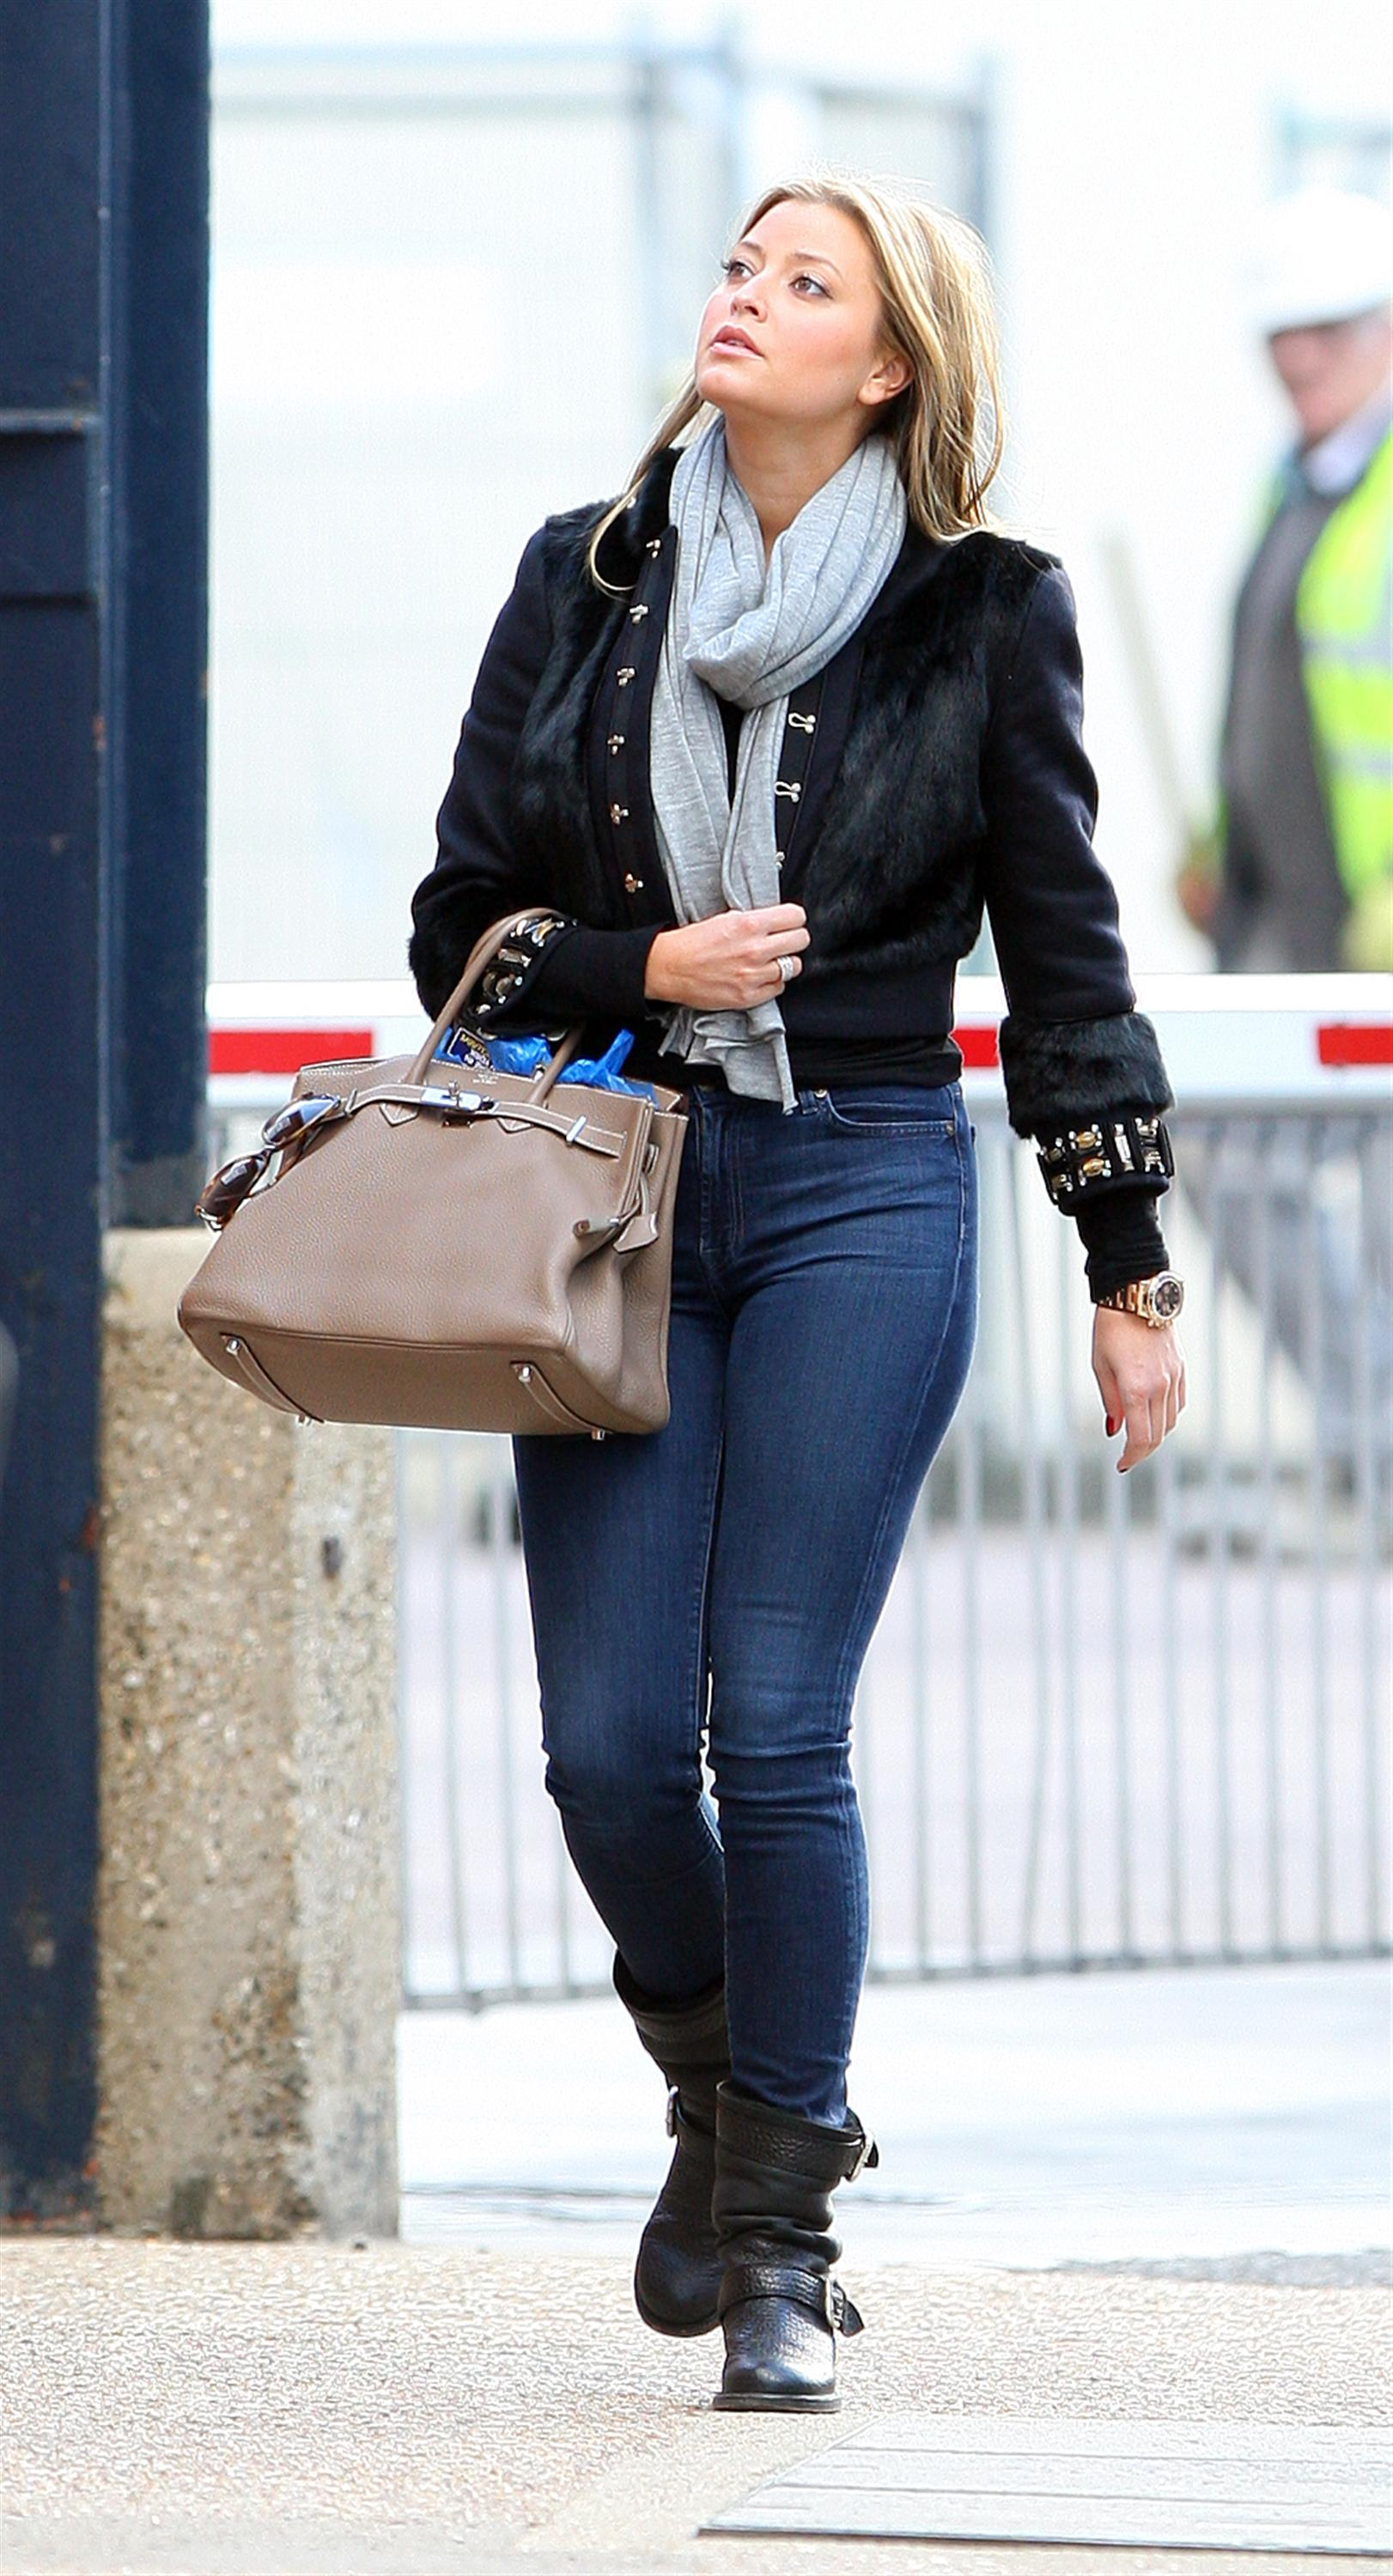 Holly Valance Tight Jeans at Dance Studios in London